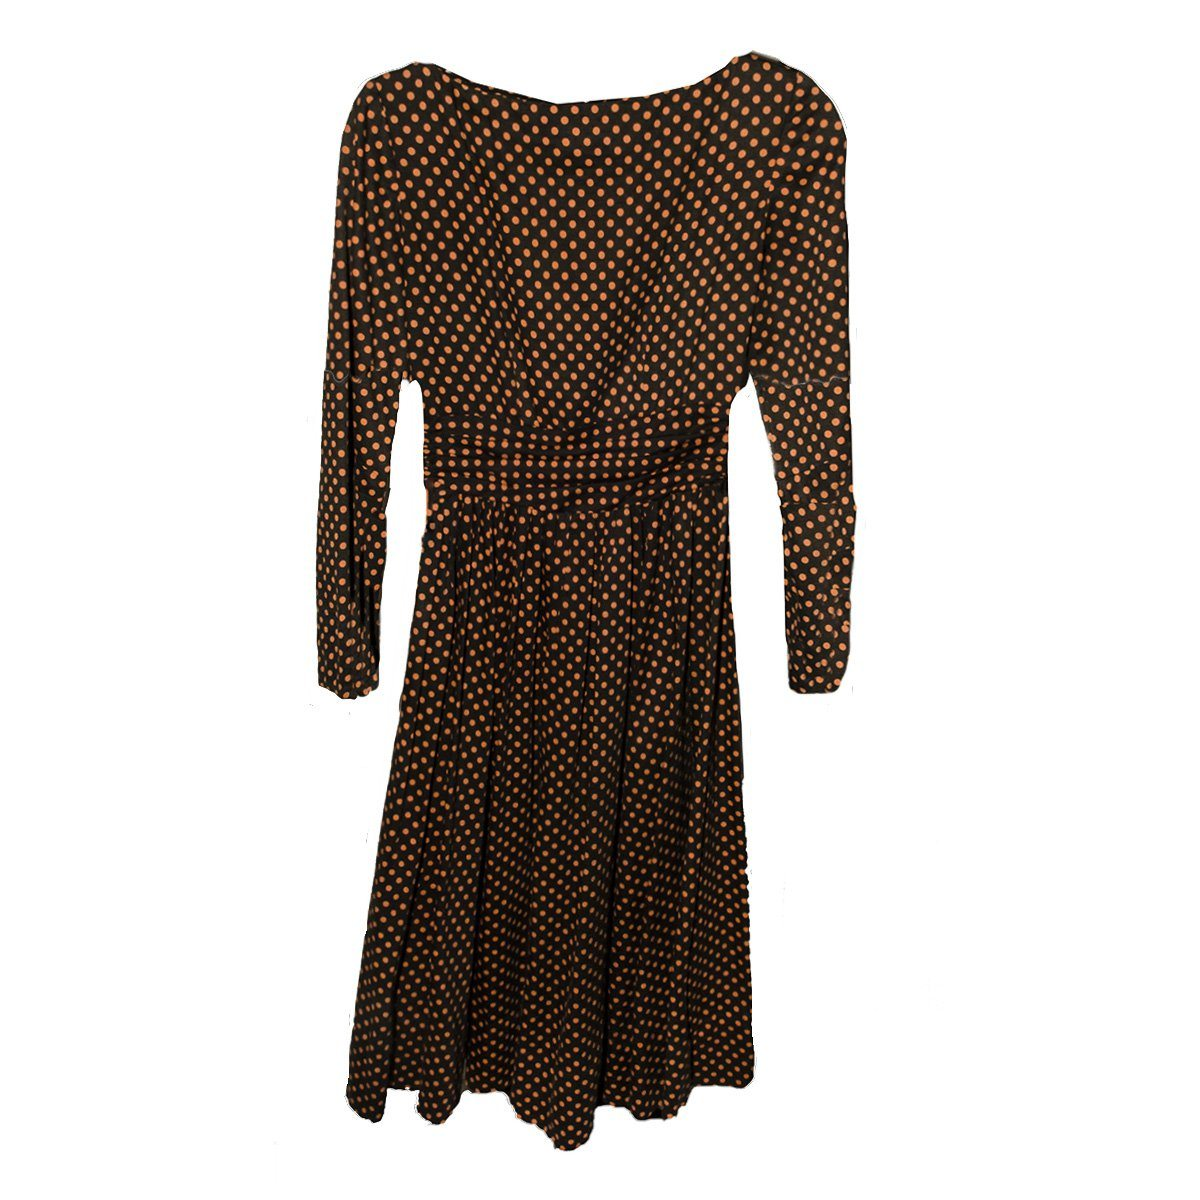 1950s Jean Lane Original Wool Jersey Dress 4, Orange & Brown Polka Dot, Size Small